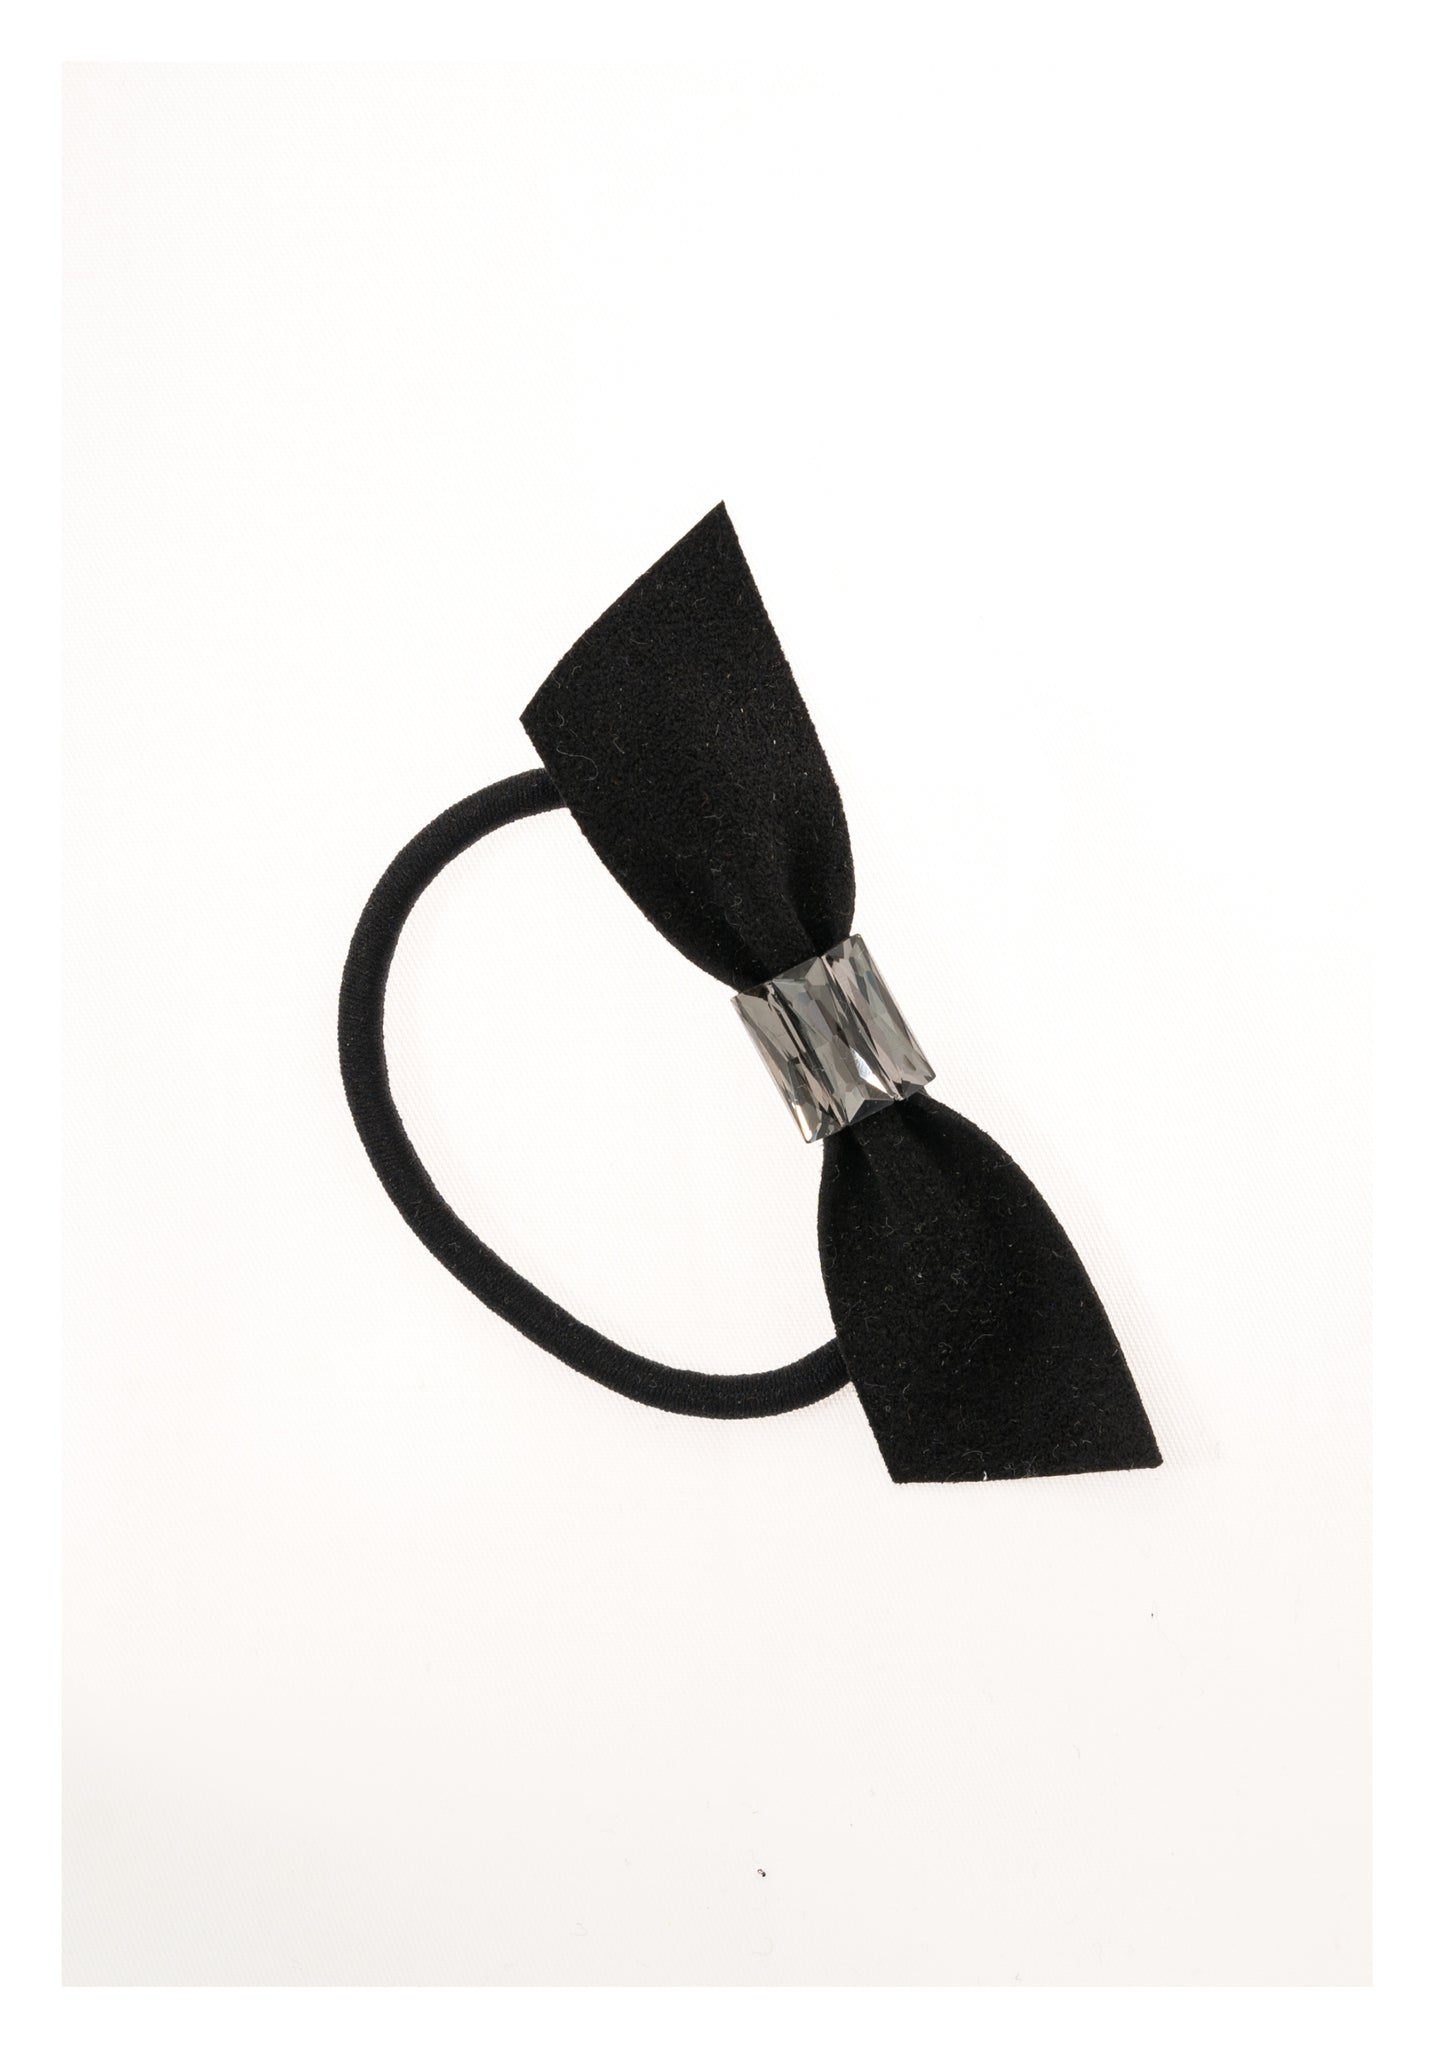 Middle Gem Ribbon Hairband Black - whoami